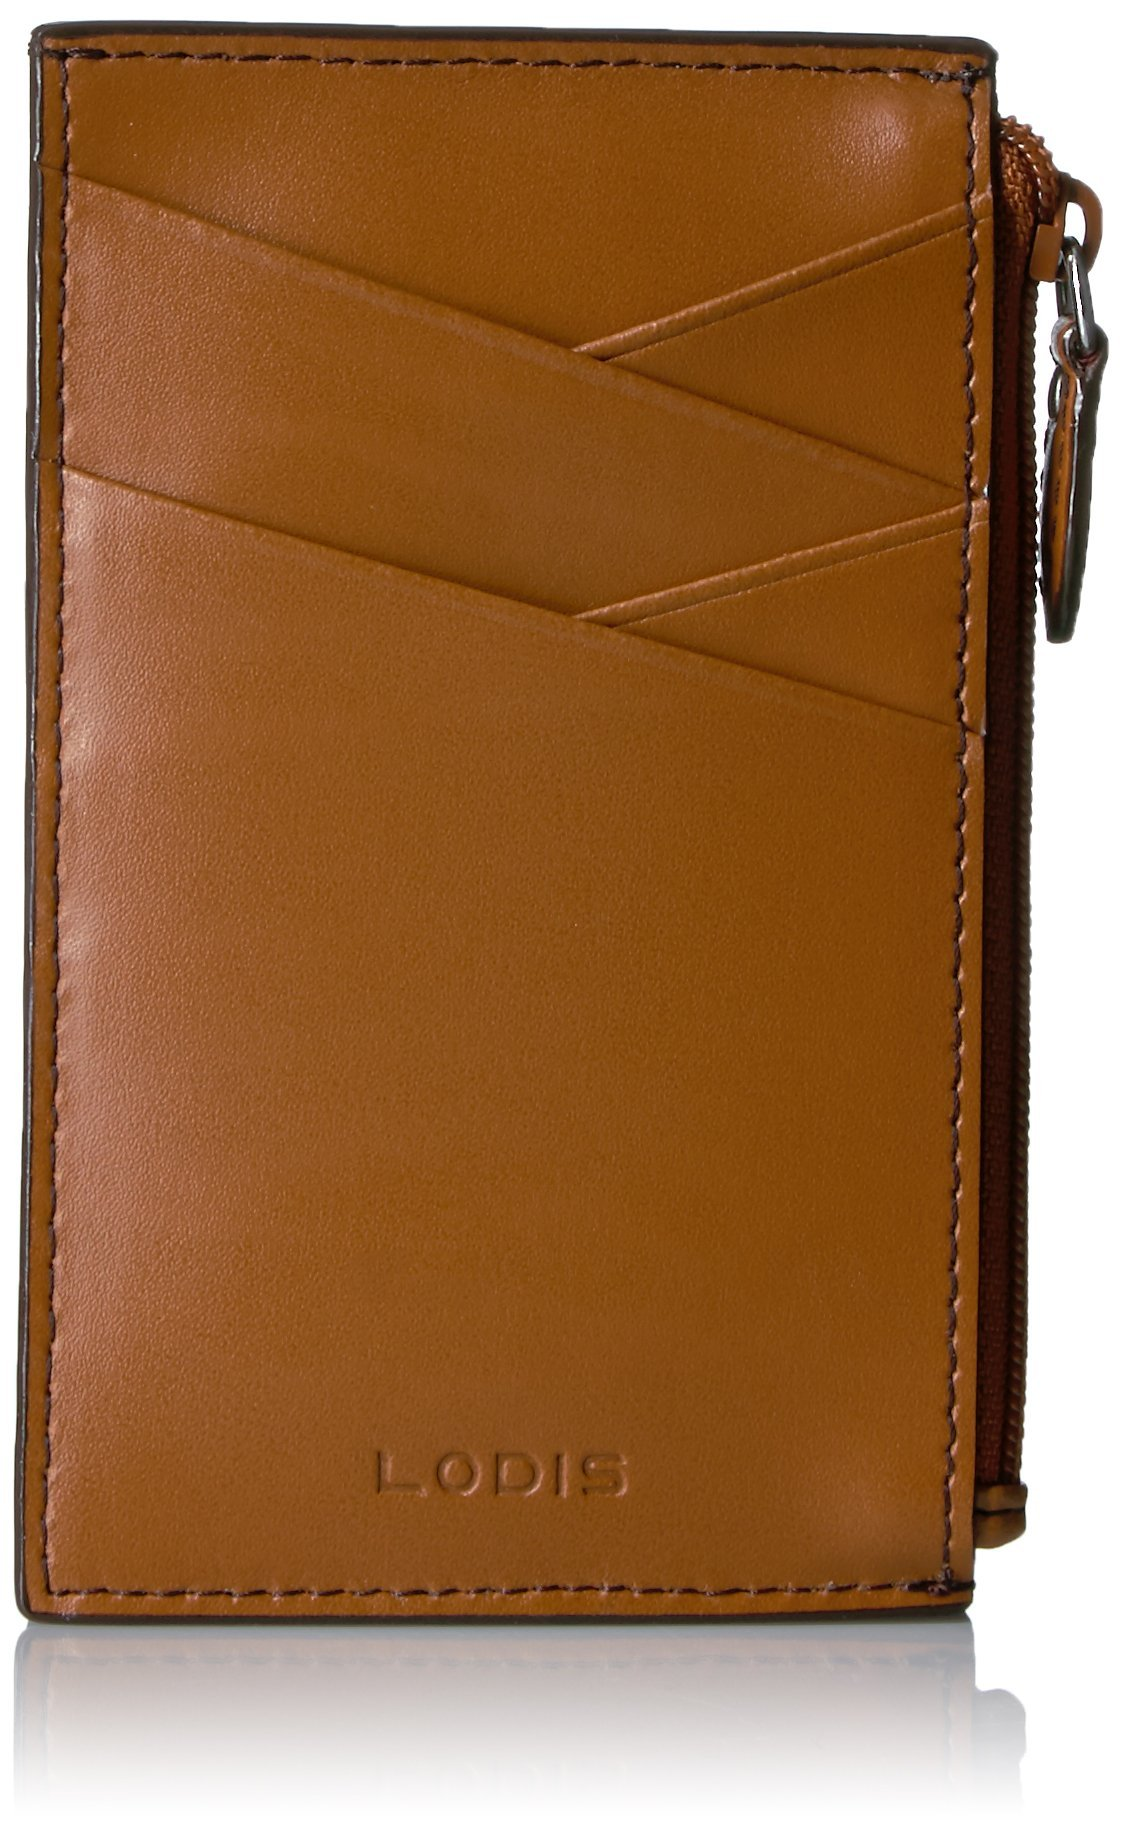 Lodis Women's Audrey Ina Card Case, Toffee, One Size